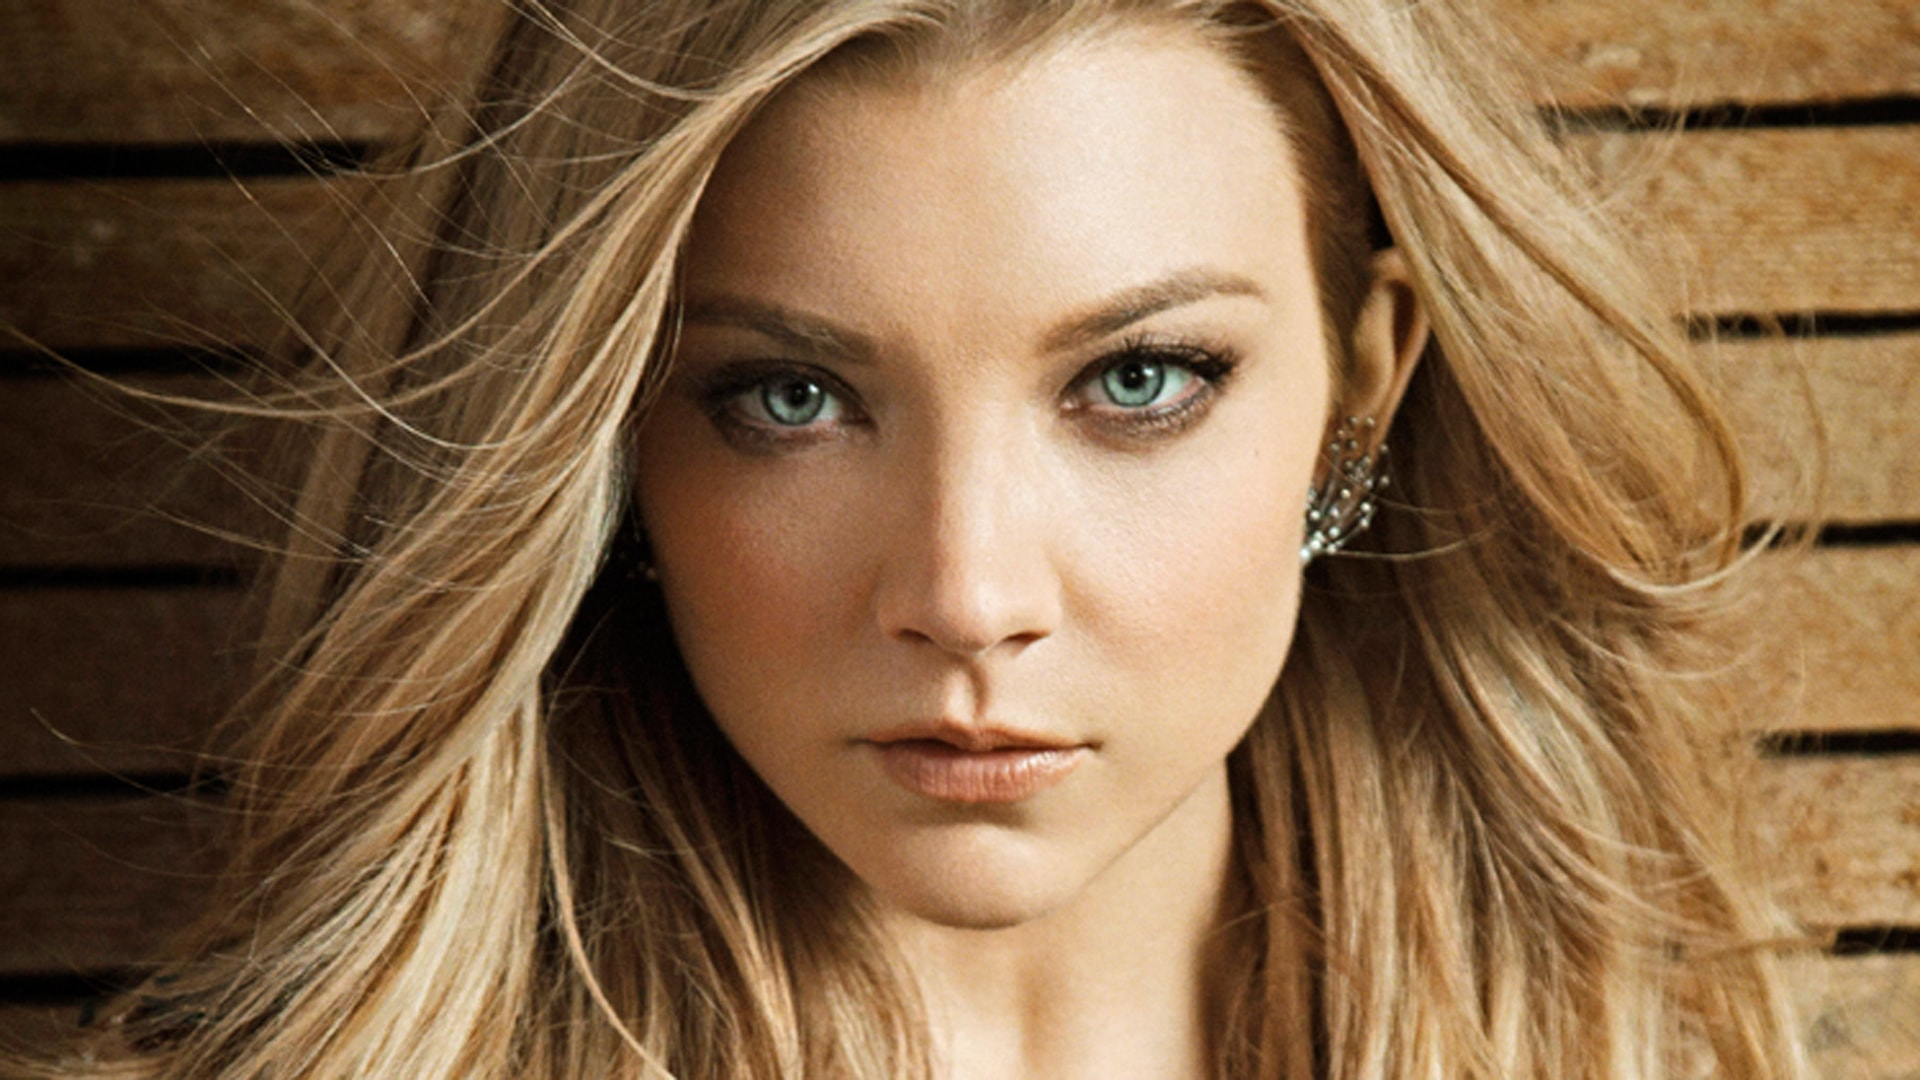 Natalie Dormer Joins New Horror Series Penny Dreadful City Of